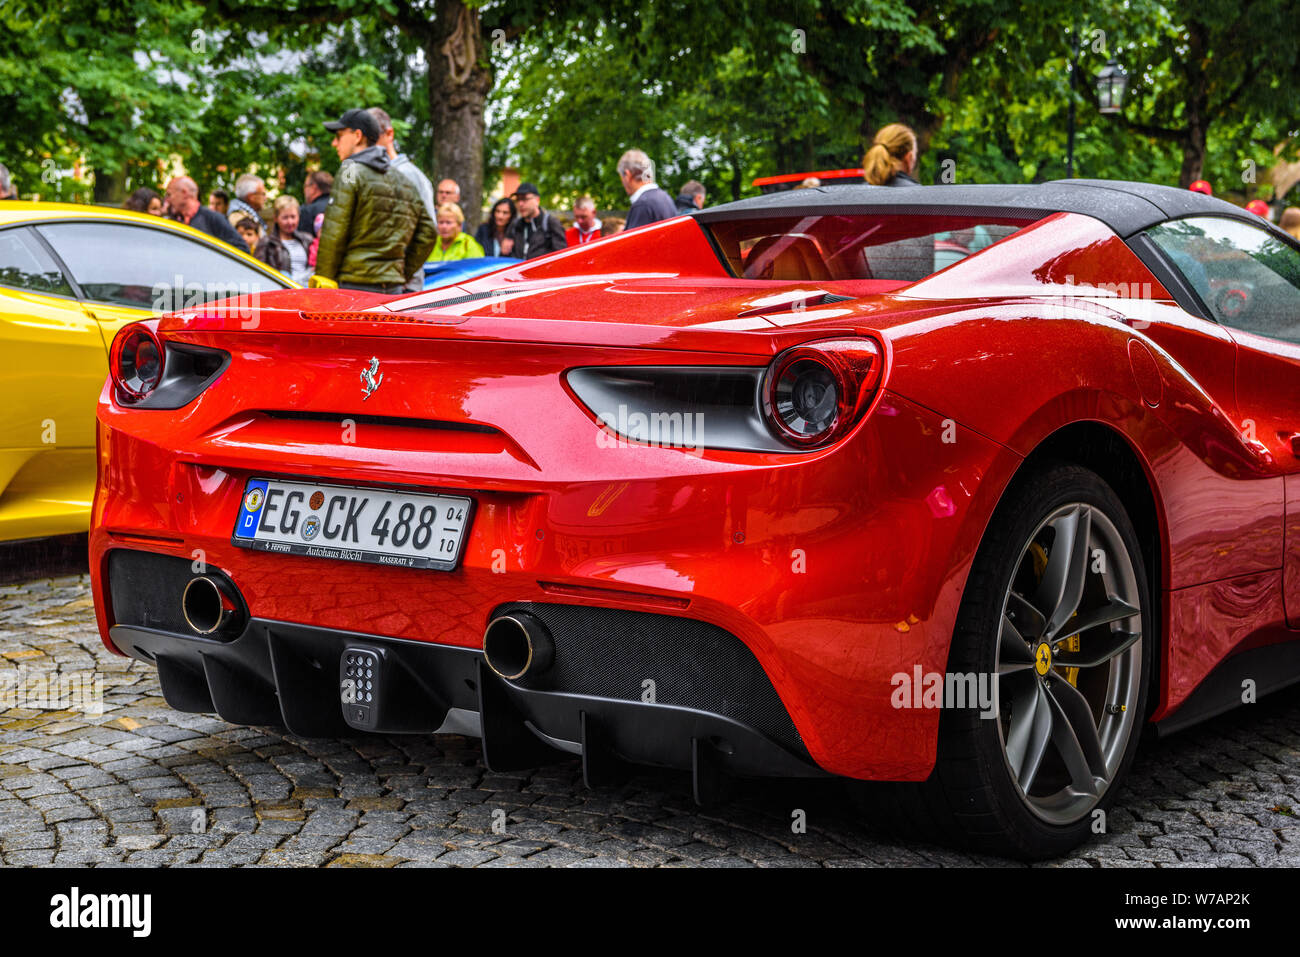 Germany Fulda Jul 2019 Rearview Lights Of Red Ferrari 488 Spider Type F142m Coupe Is A Mid Engine Sports Car Produced By The Italian Automobile Ma Stock Photo Alamy